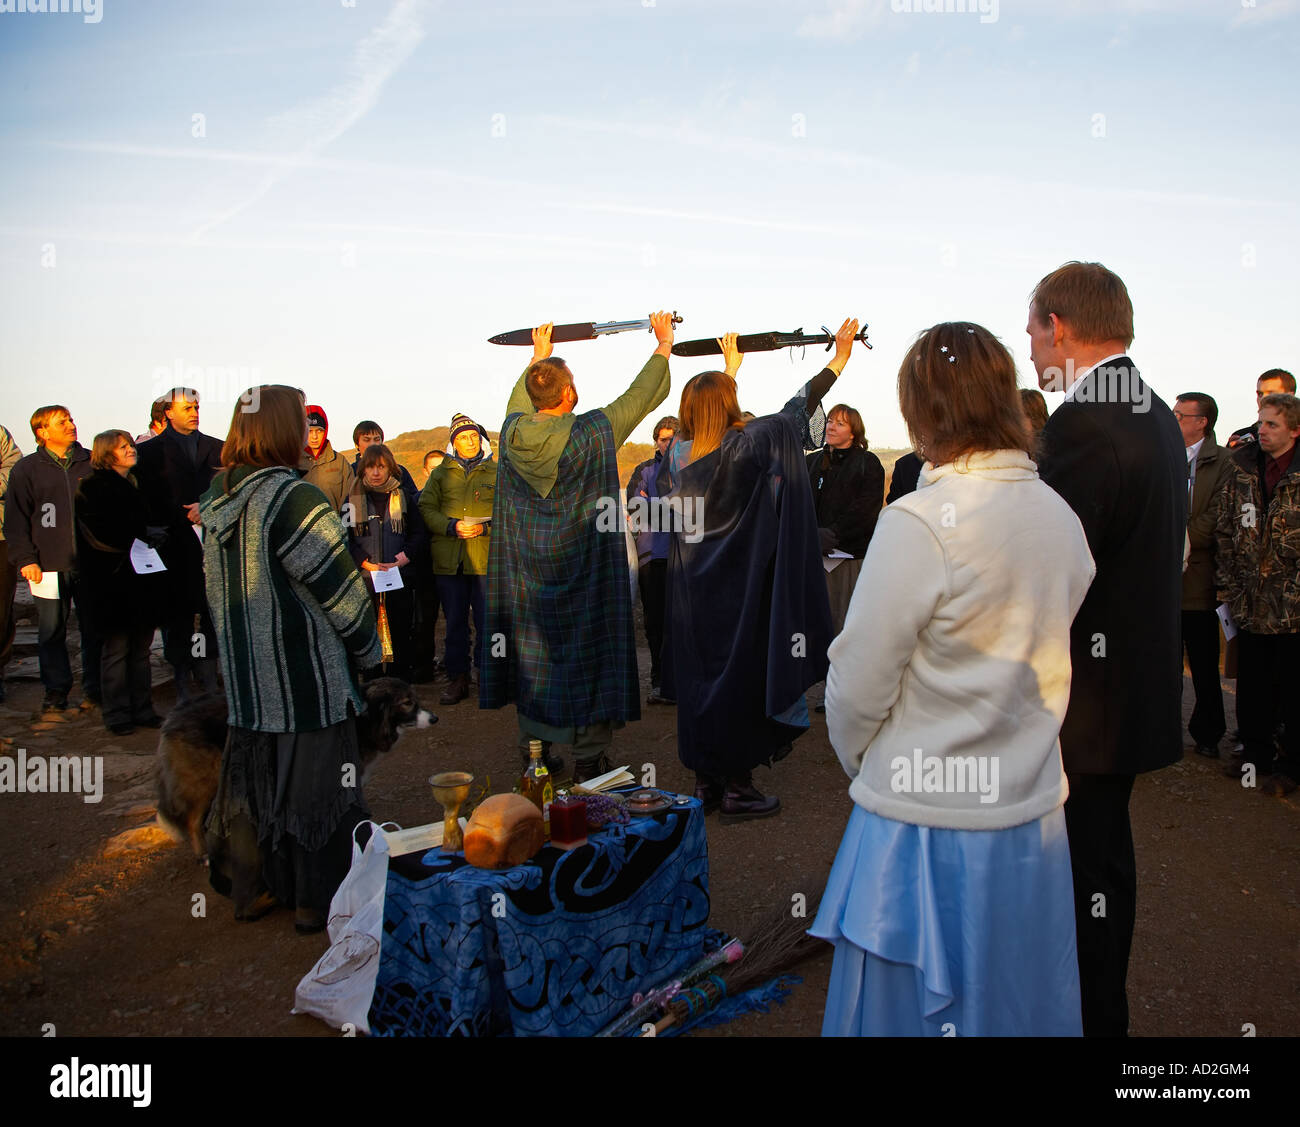 Wiccan wedding stock photos wiccan wedding stock images alamy pagan handfasting wedding ceremony in wales uk stock image junglespirit Gallery